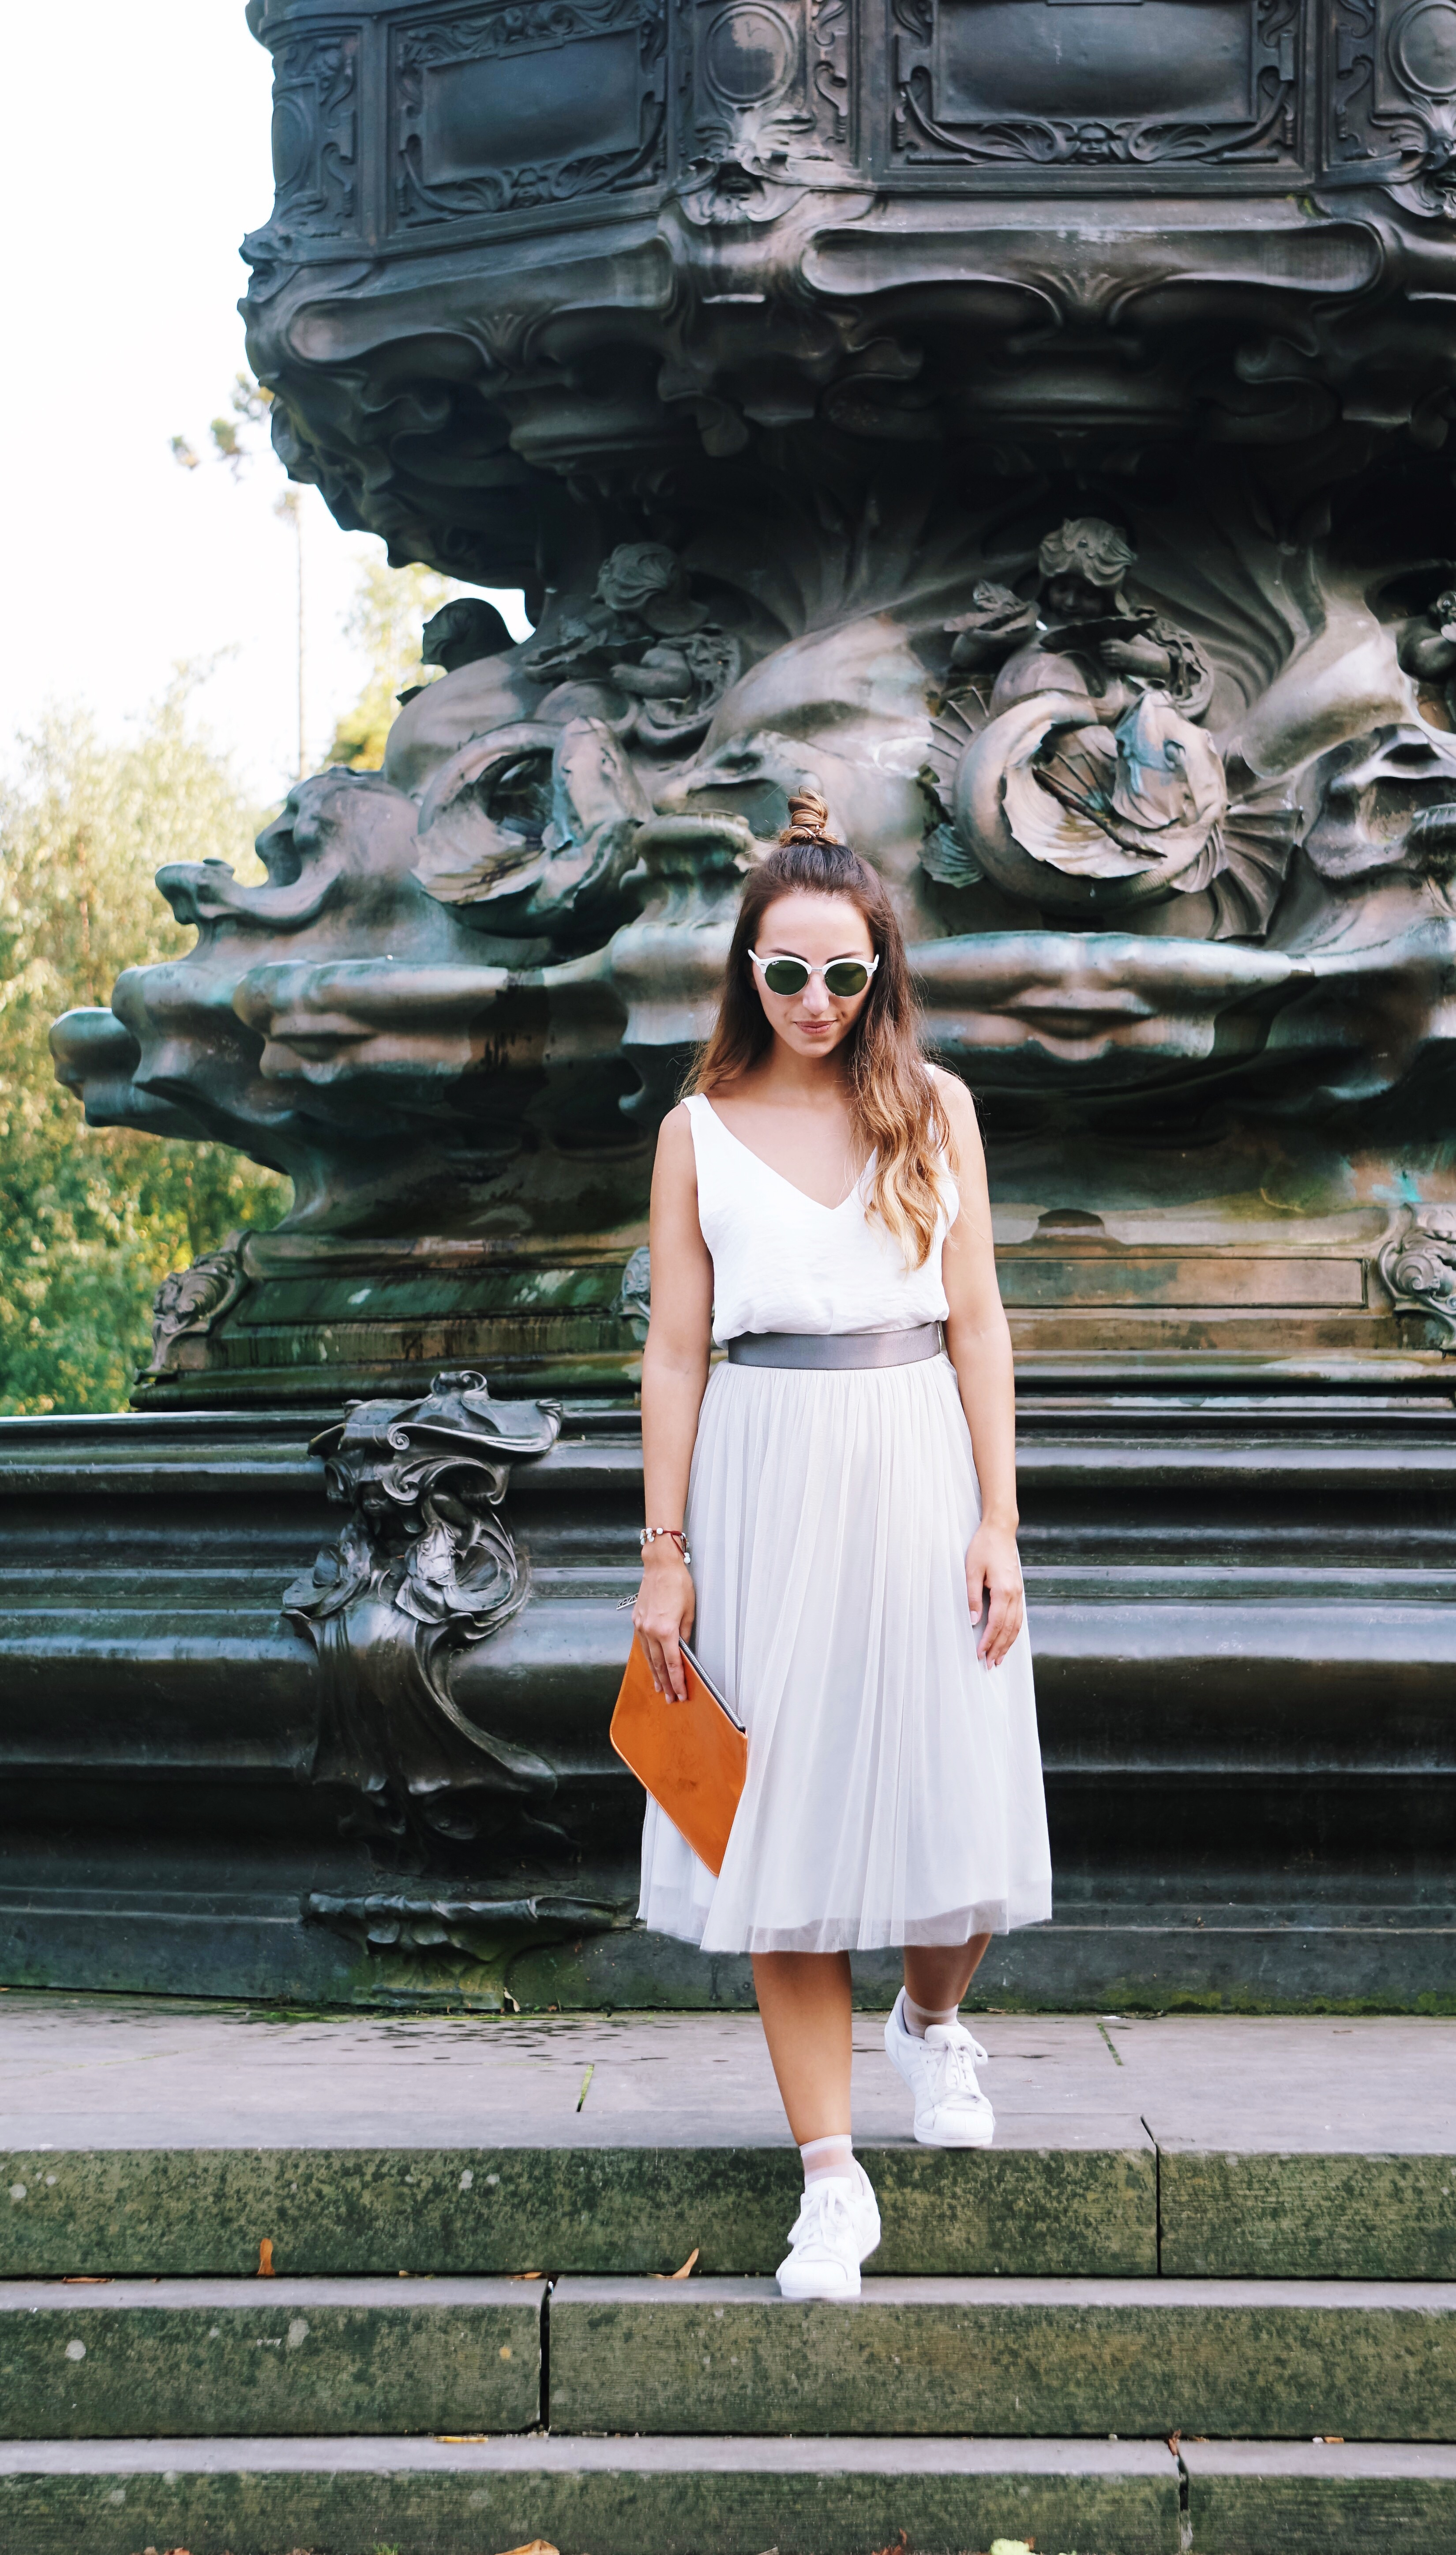 Hyphy Hip, tulle skirt, hyphyhip, Rayban, reiss, fashion blogger, OOTD, outfit post, kenzo